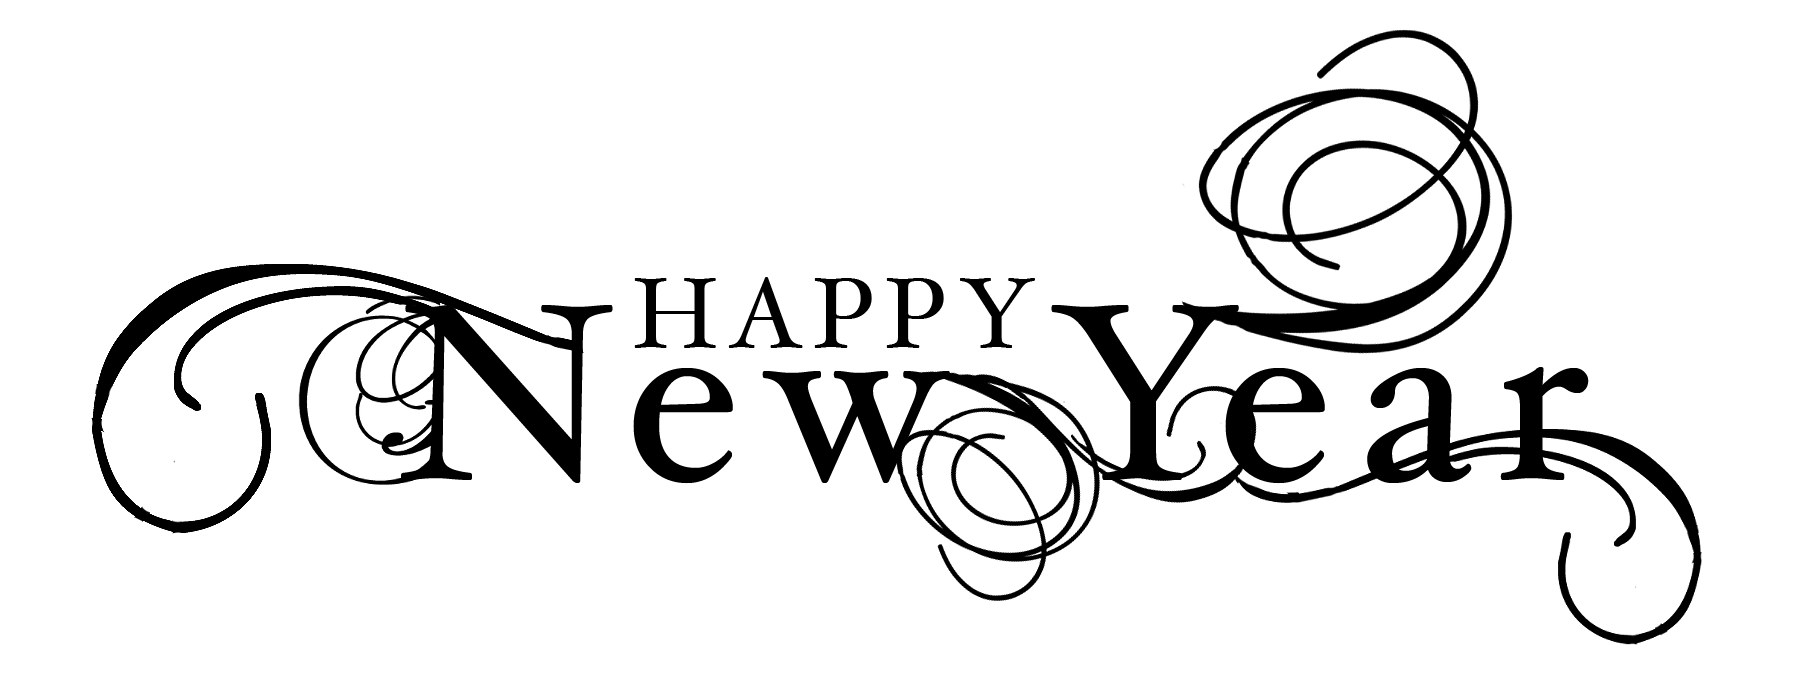 Happy New Year PNG Transparent Happy New Year.PNG Images